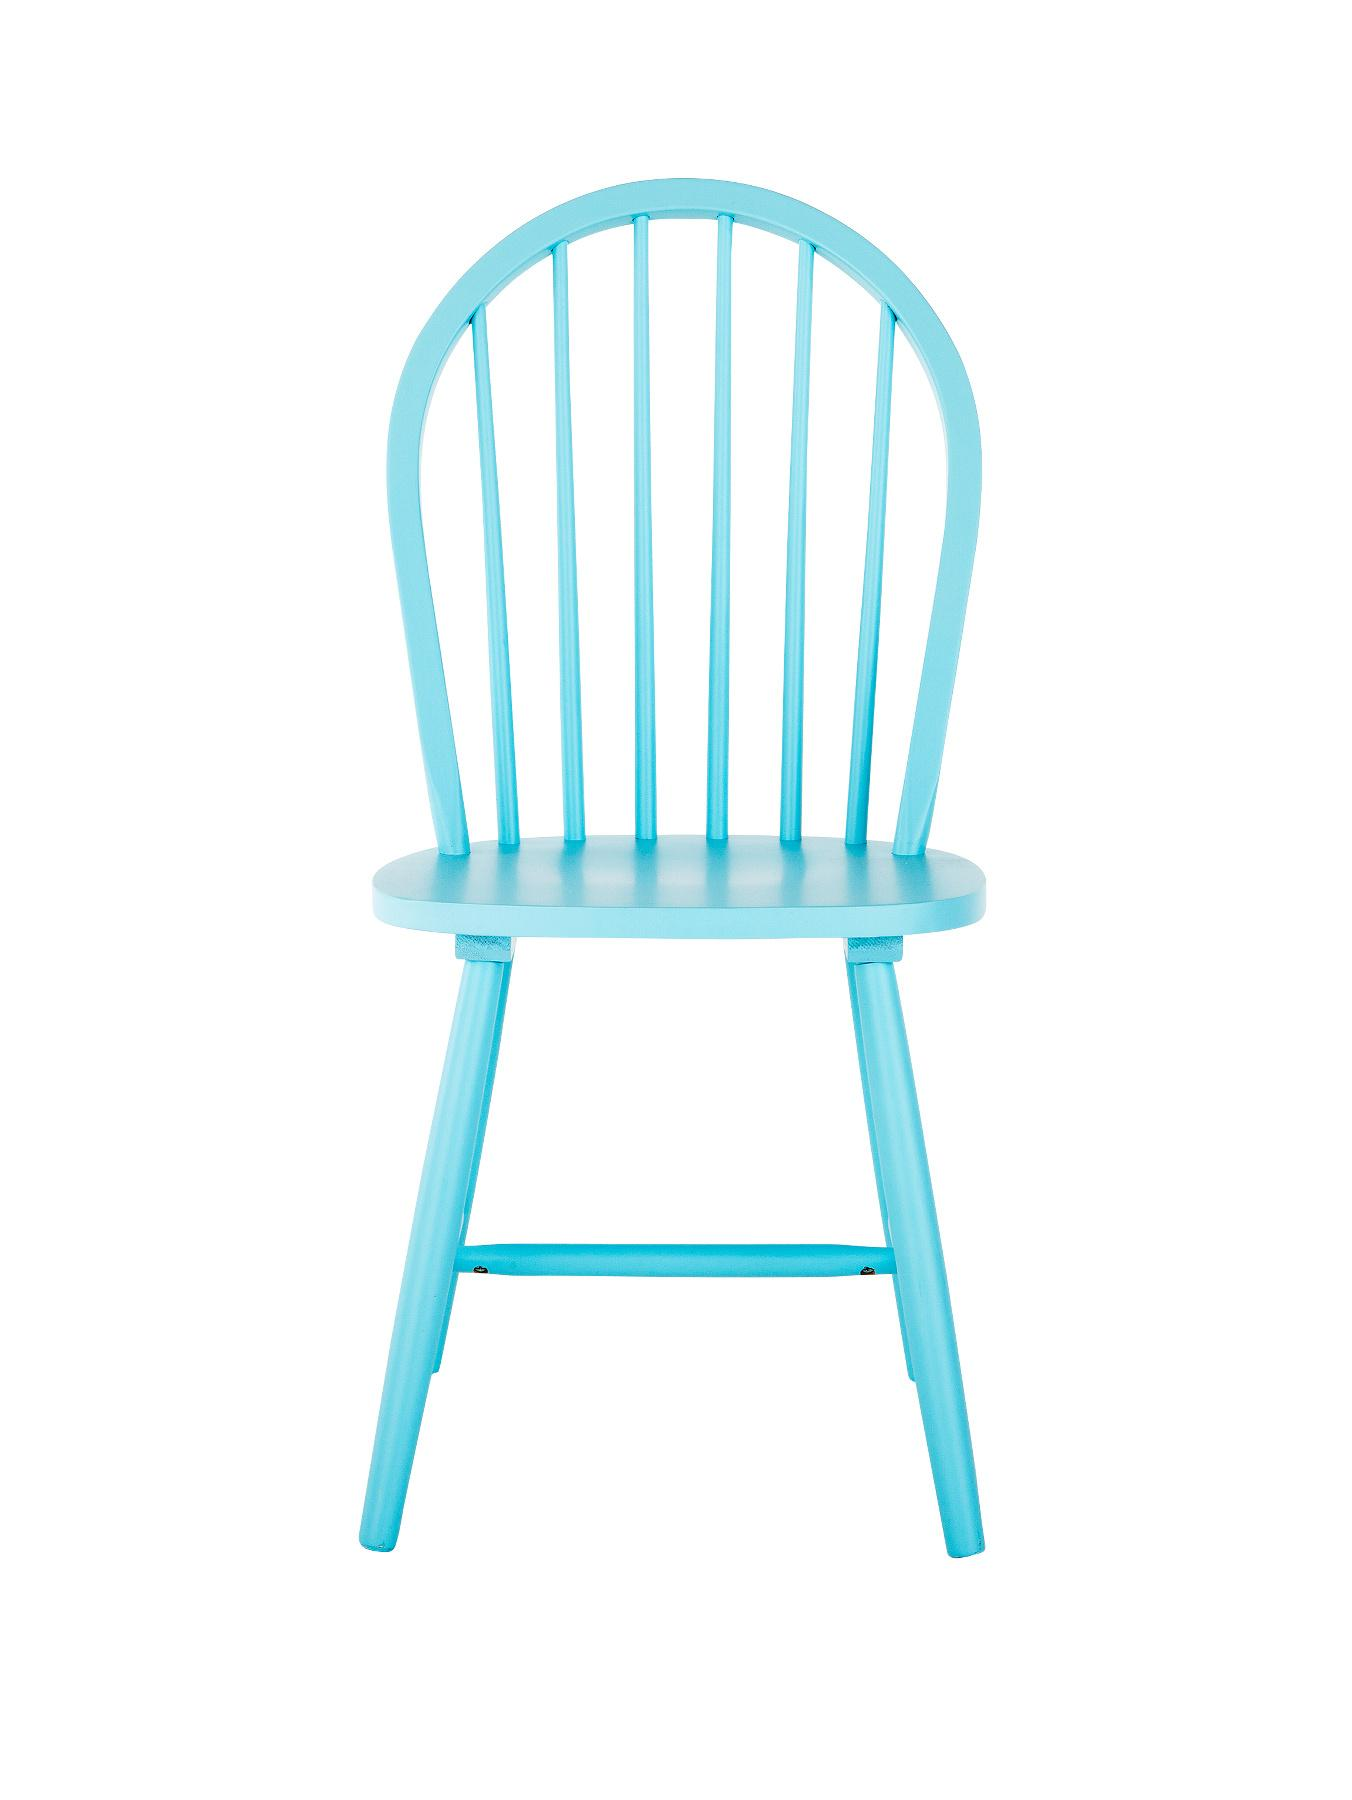 Daisy Chair - Blue, Blue